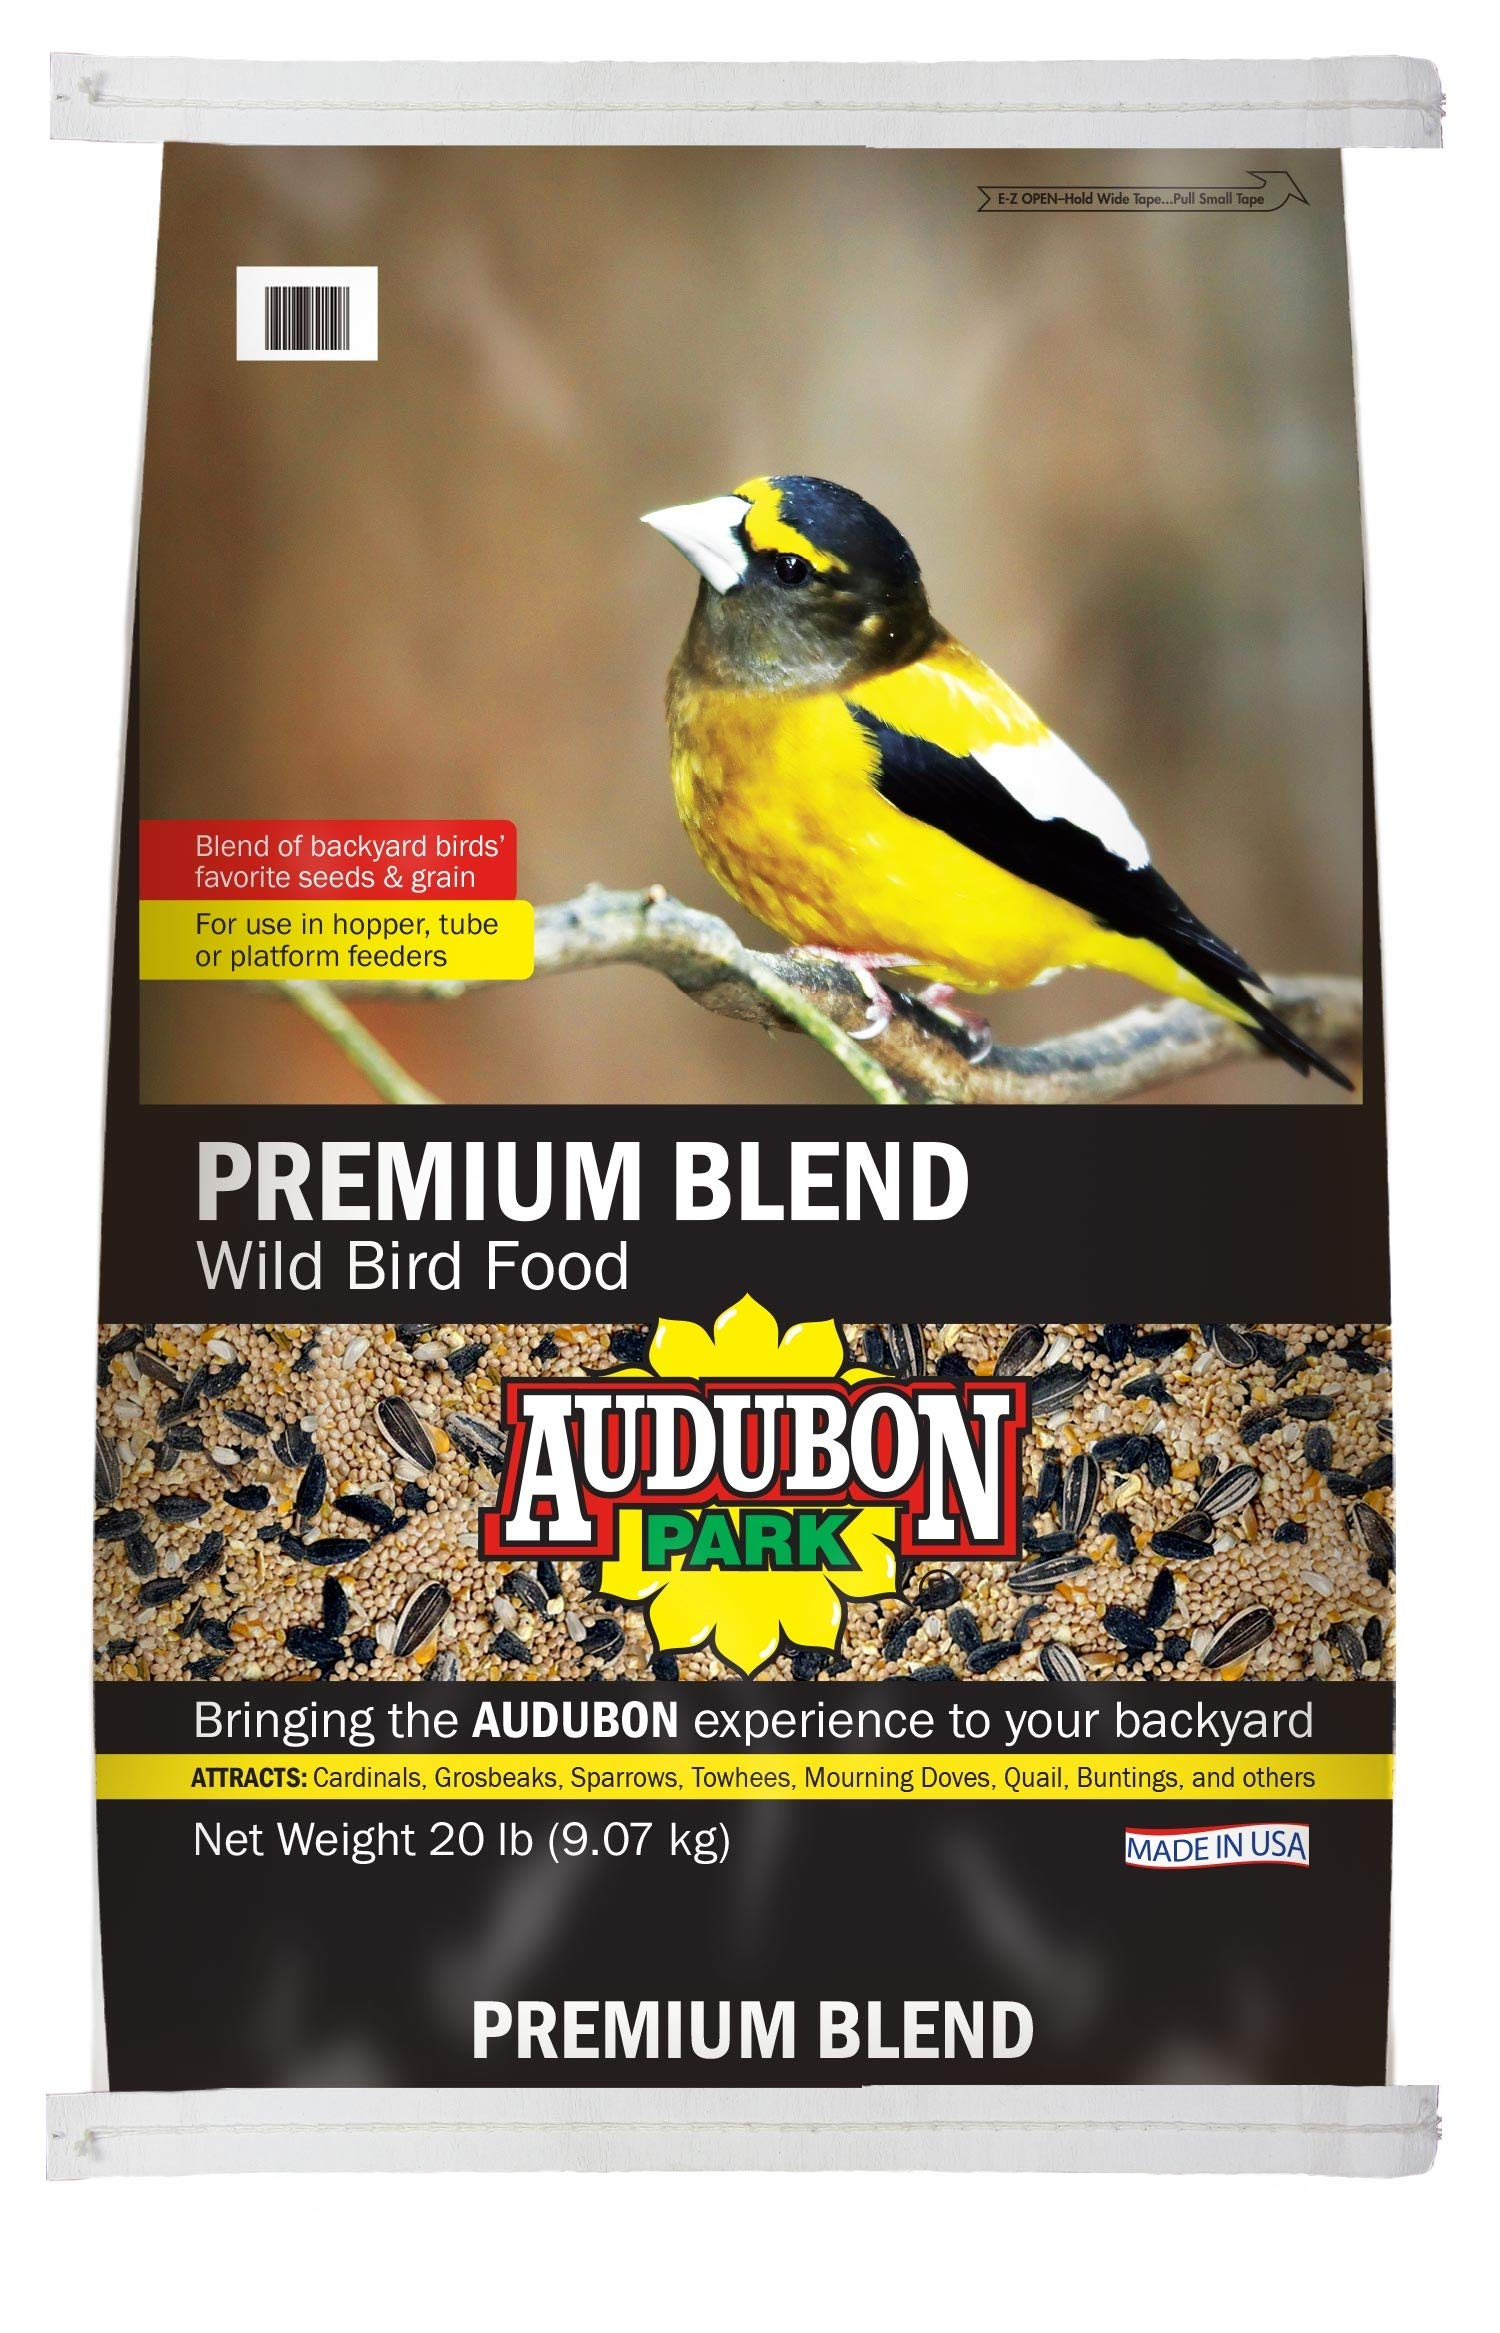 Audubon Park 13245 Premium Blend Wild Bird Food, 20-Pound by Global Harvest Foods